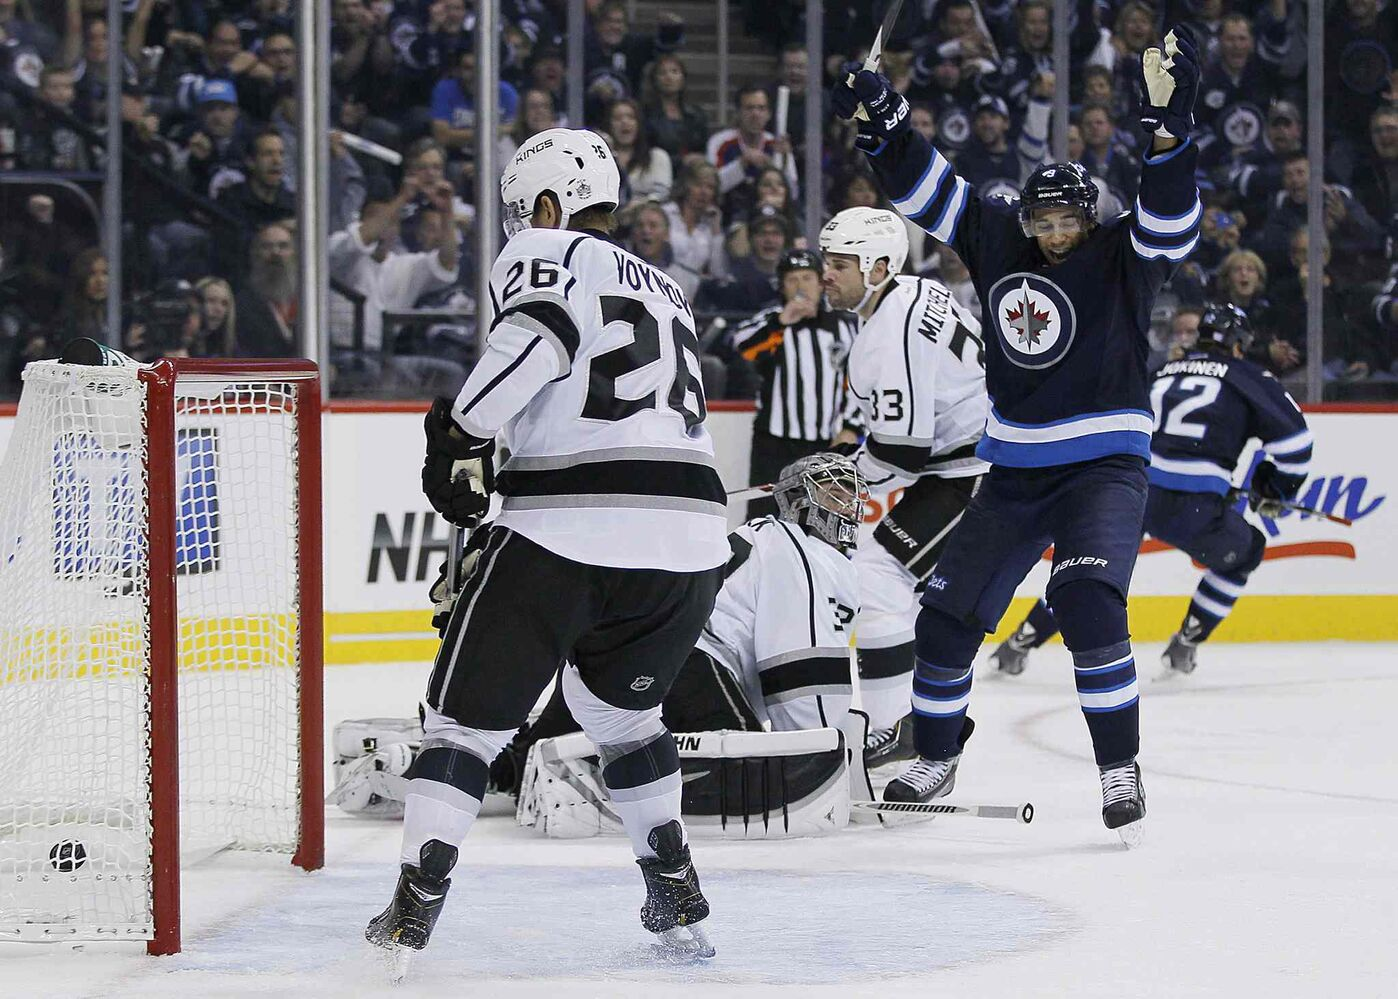 Winnipeg Jets' Evander Kane (9) and Olli Jokinen (12) celebrate Jokinen's goal against the Los Angeles Kings during the second period. (JOHN WOODS / THE CANADIAN PRESS)